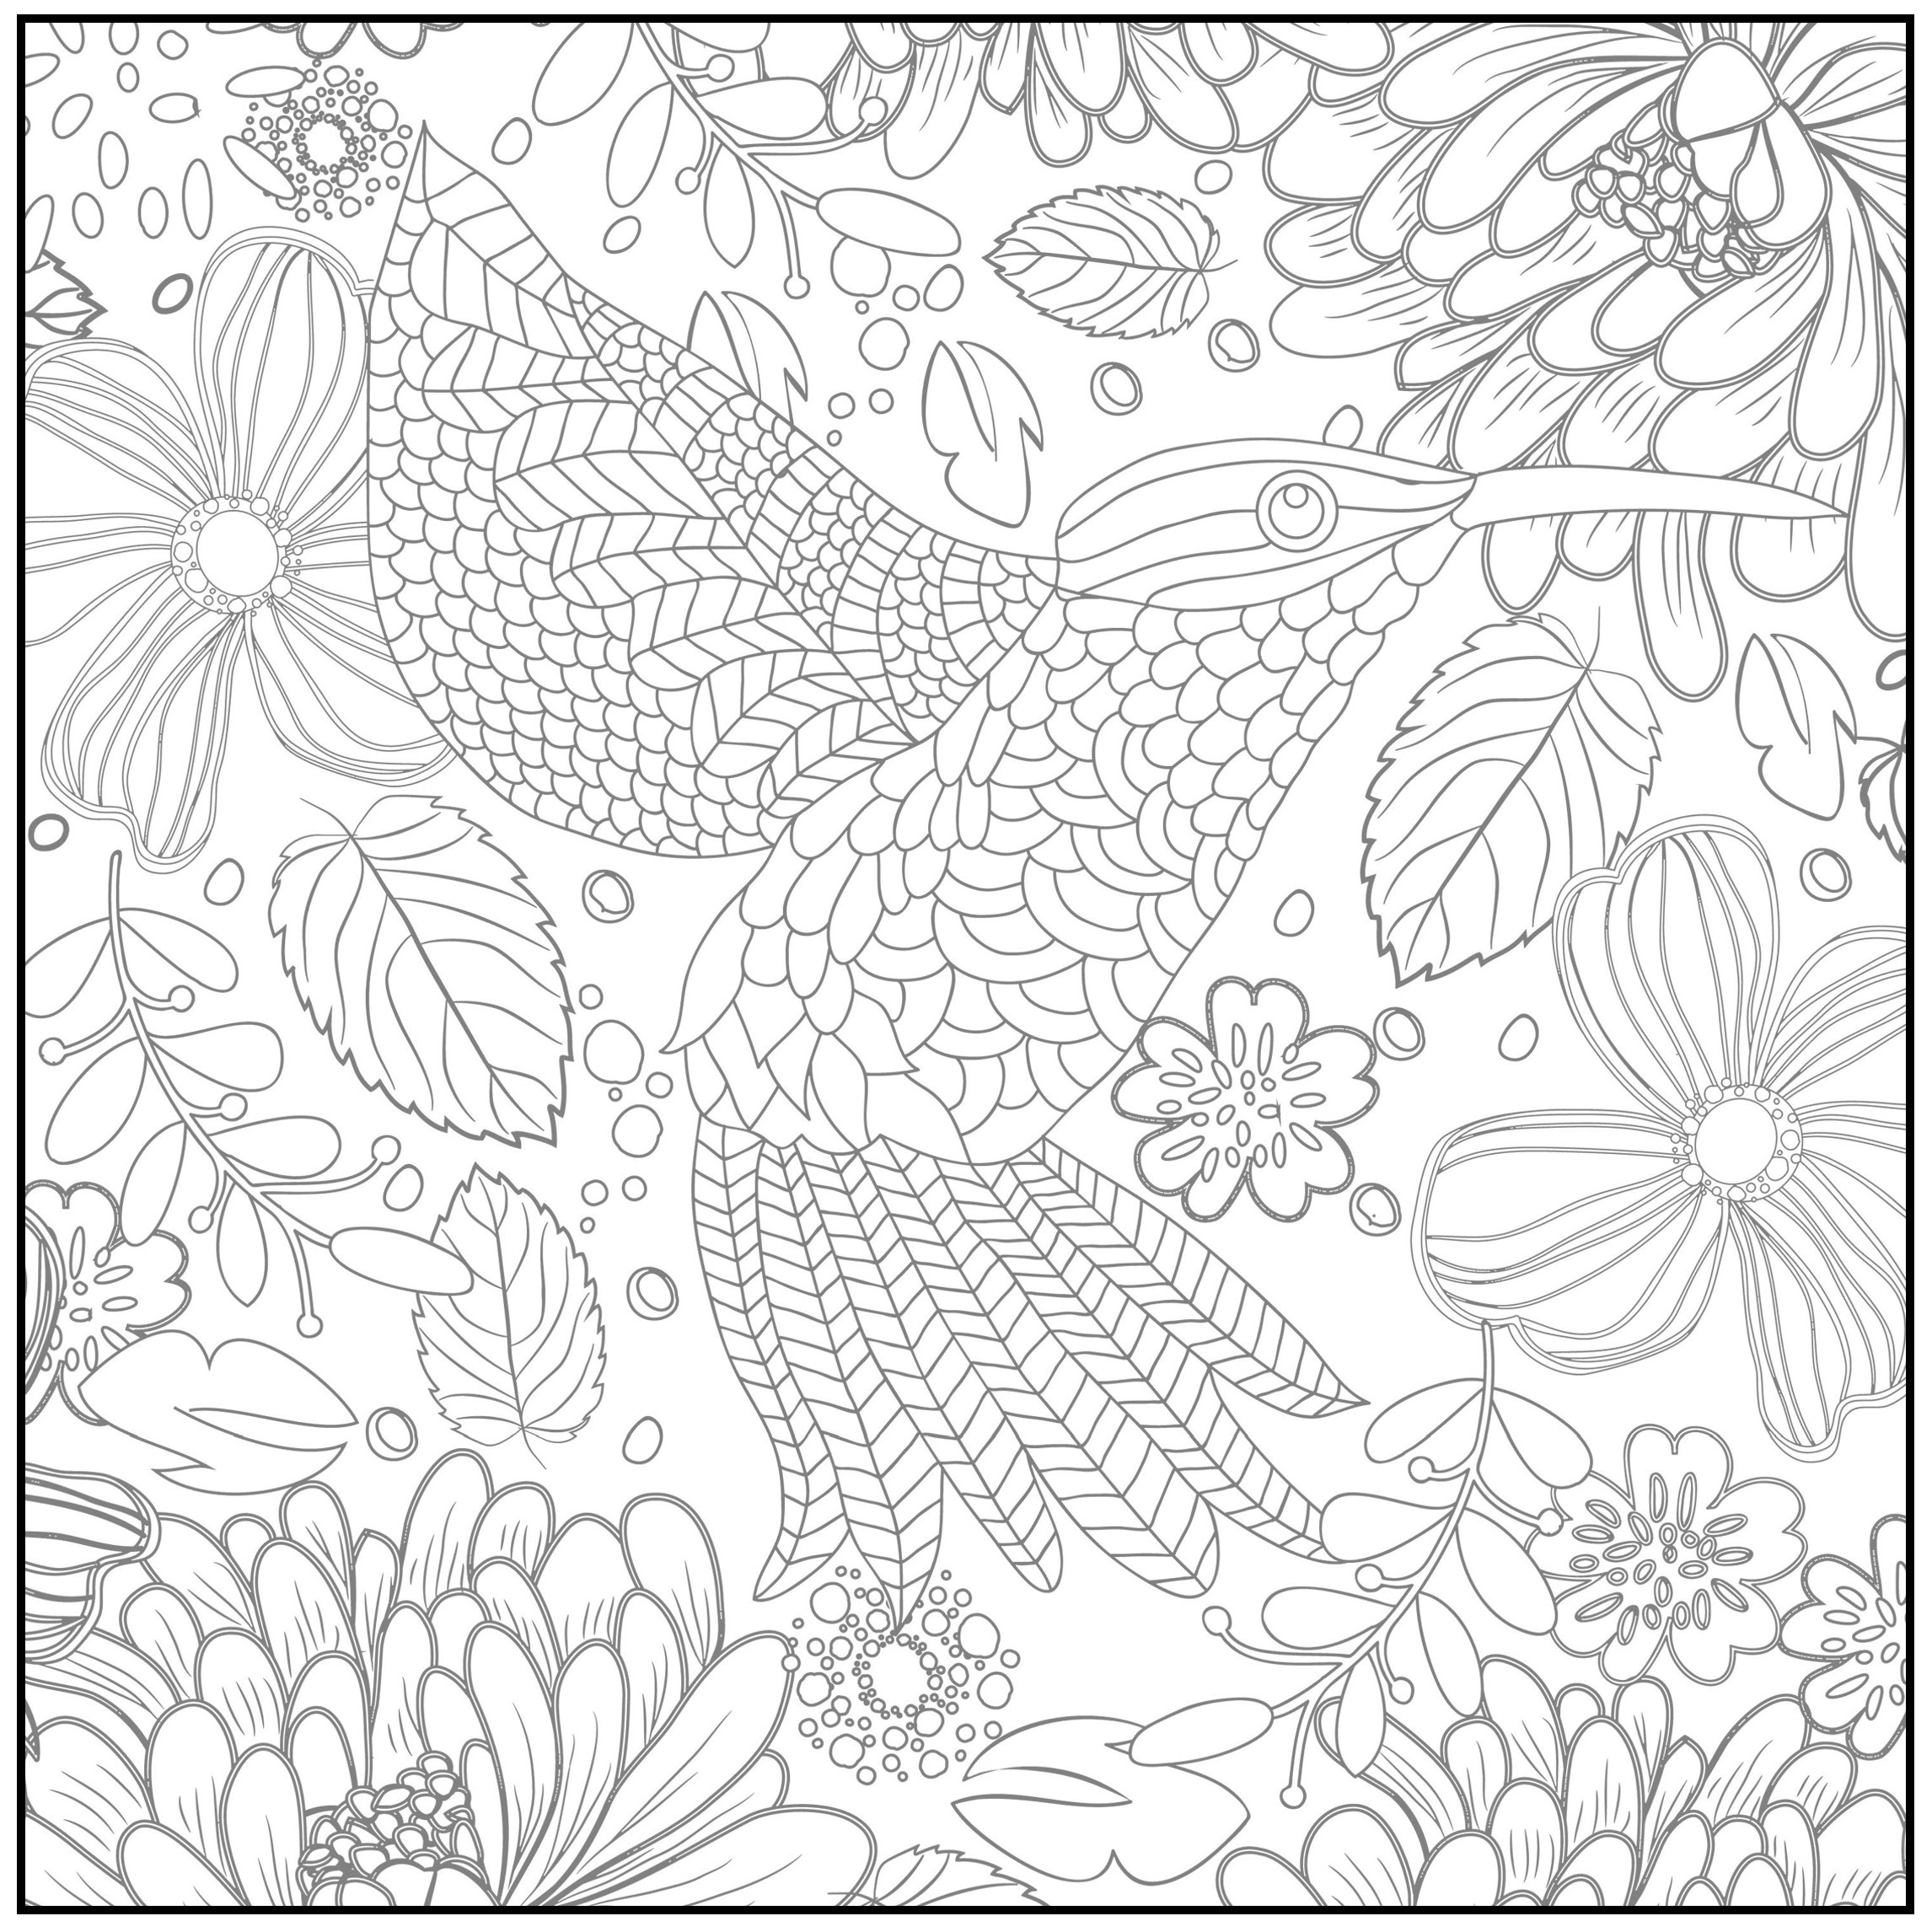 Amazon.com: Spring Serenade Adult Coloring Book With Bonus ...